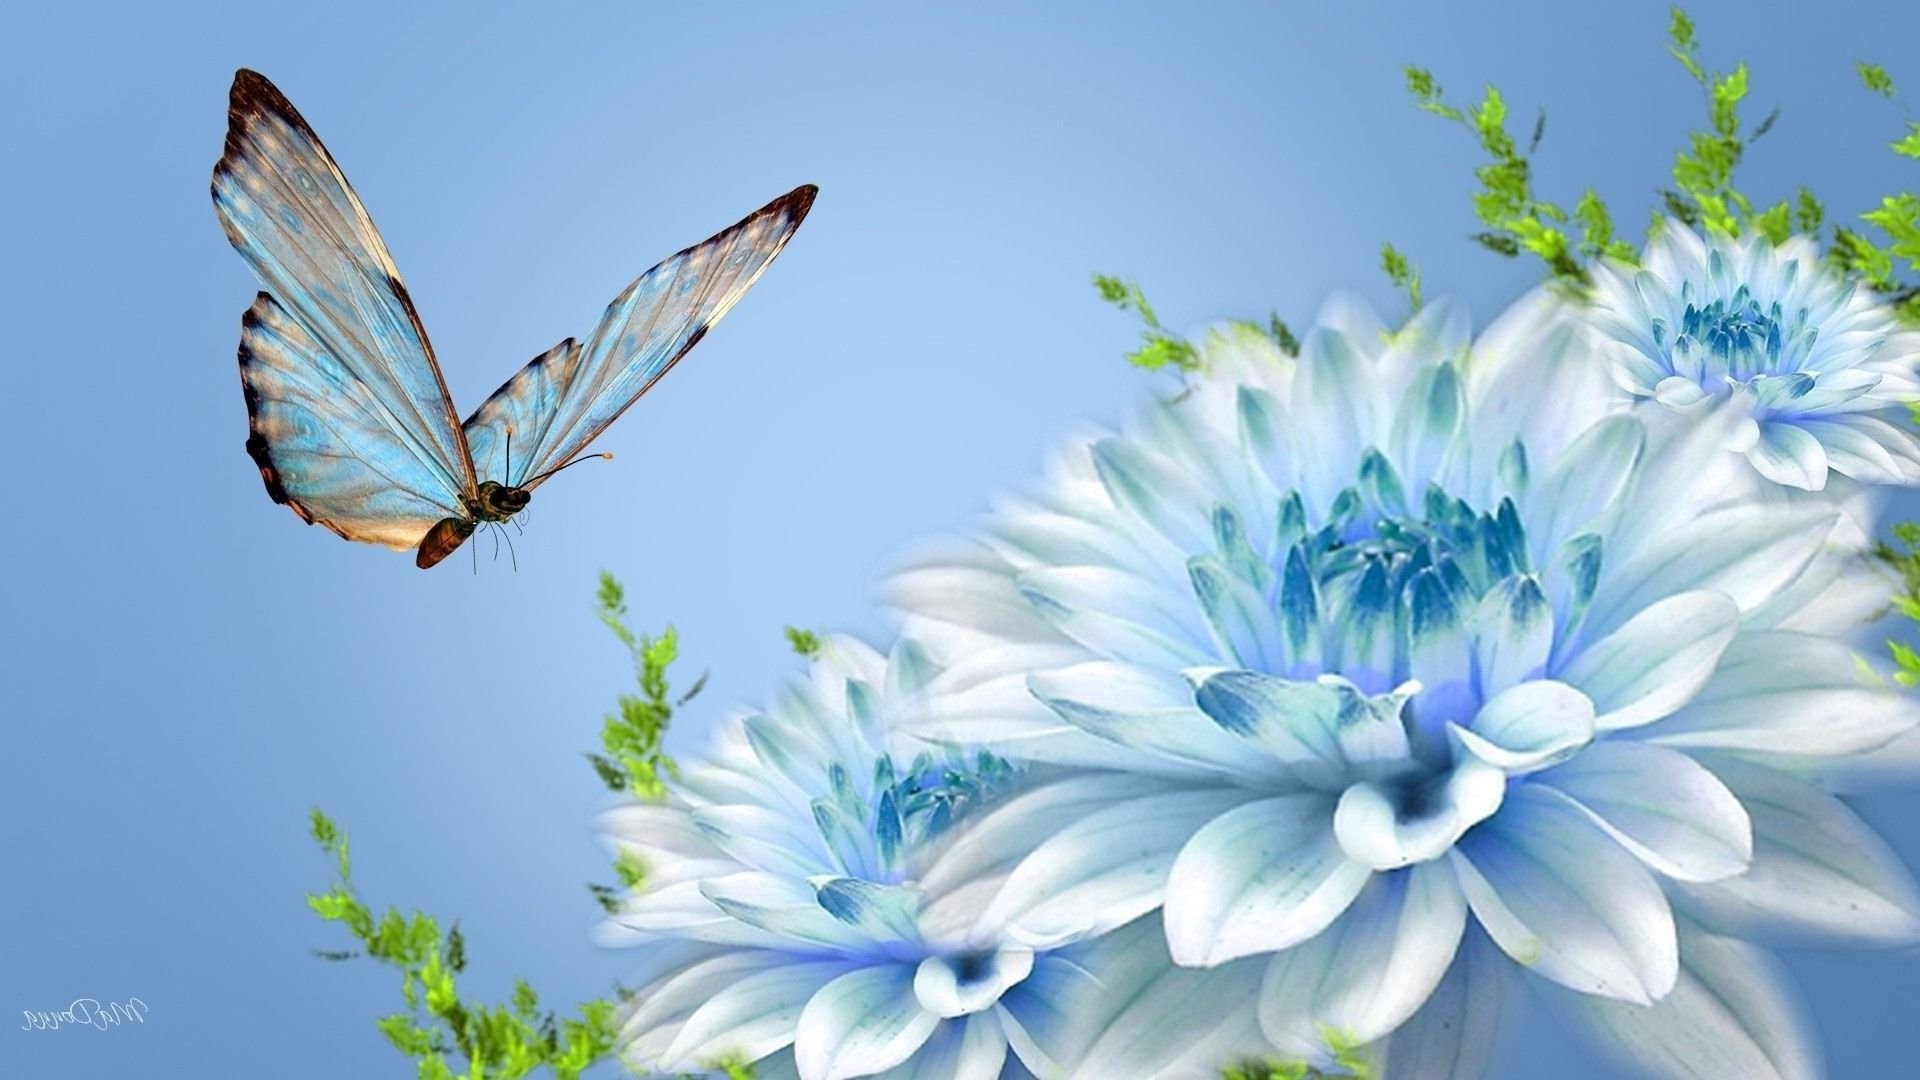 Beautiful Pictures Of Flowers and butterflies Birds New butterfly and Flower  Wallpapers Wallpaper Cave